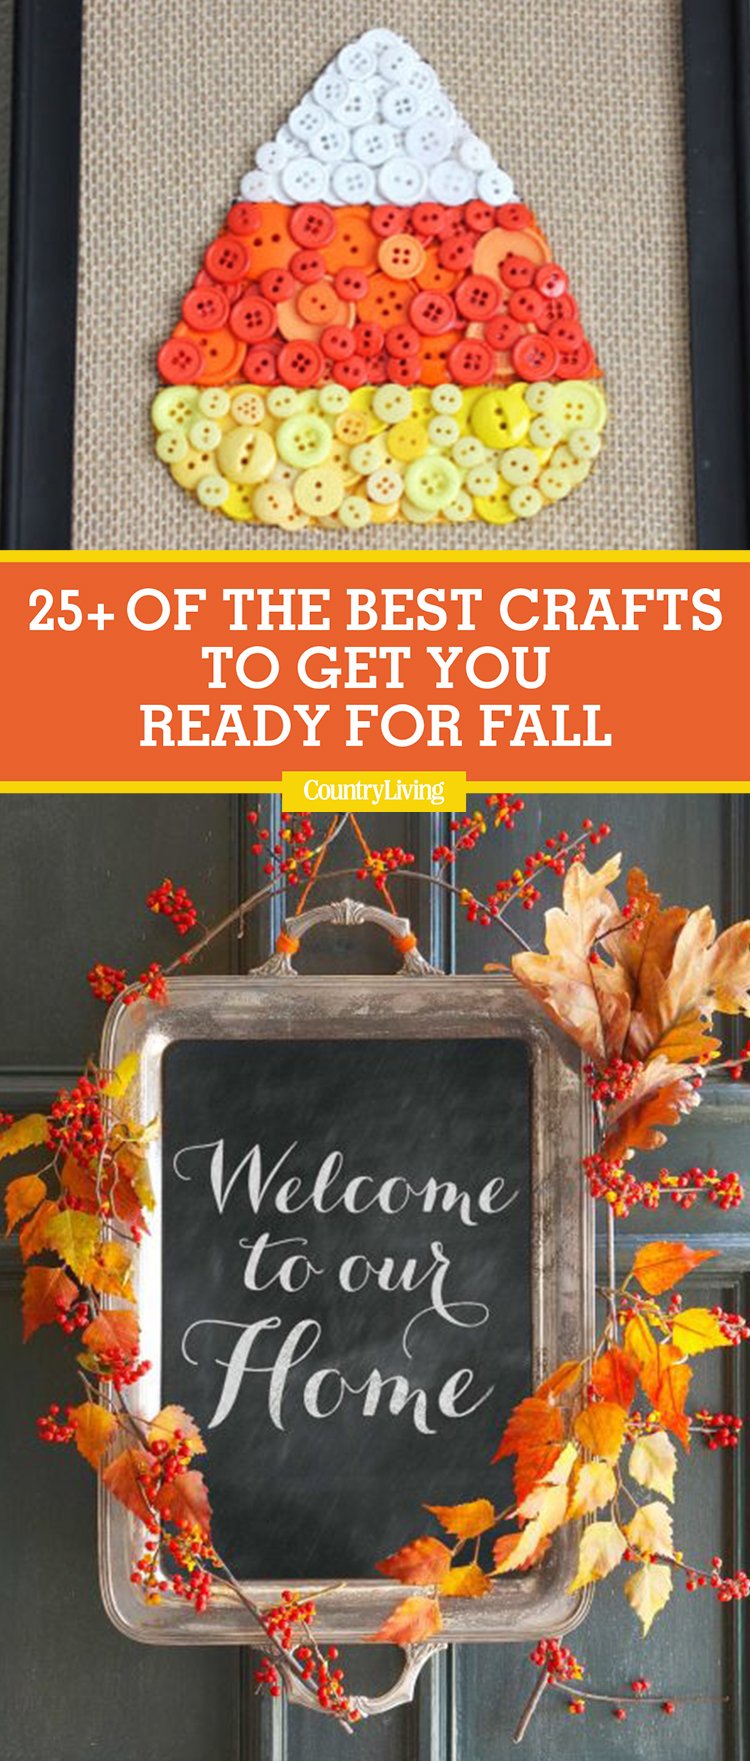 country living craft ideas 25 best fall crafts easy diy home decor ideas for fall 3711